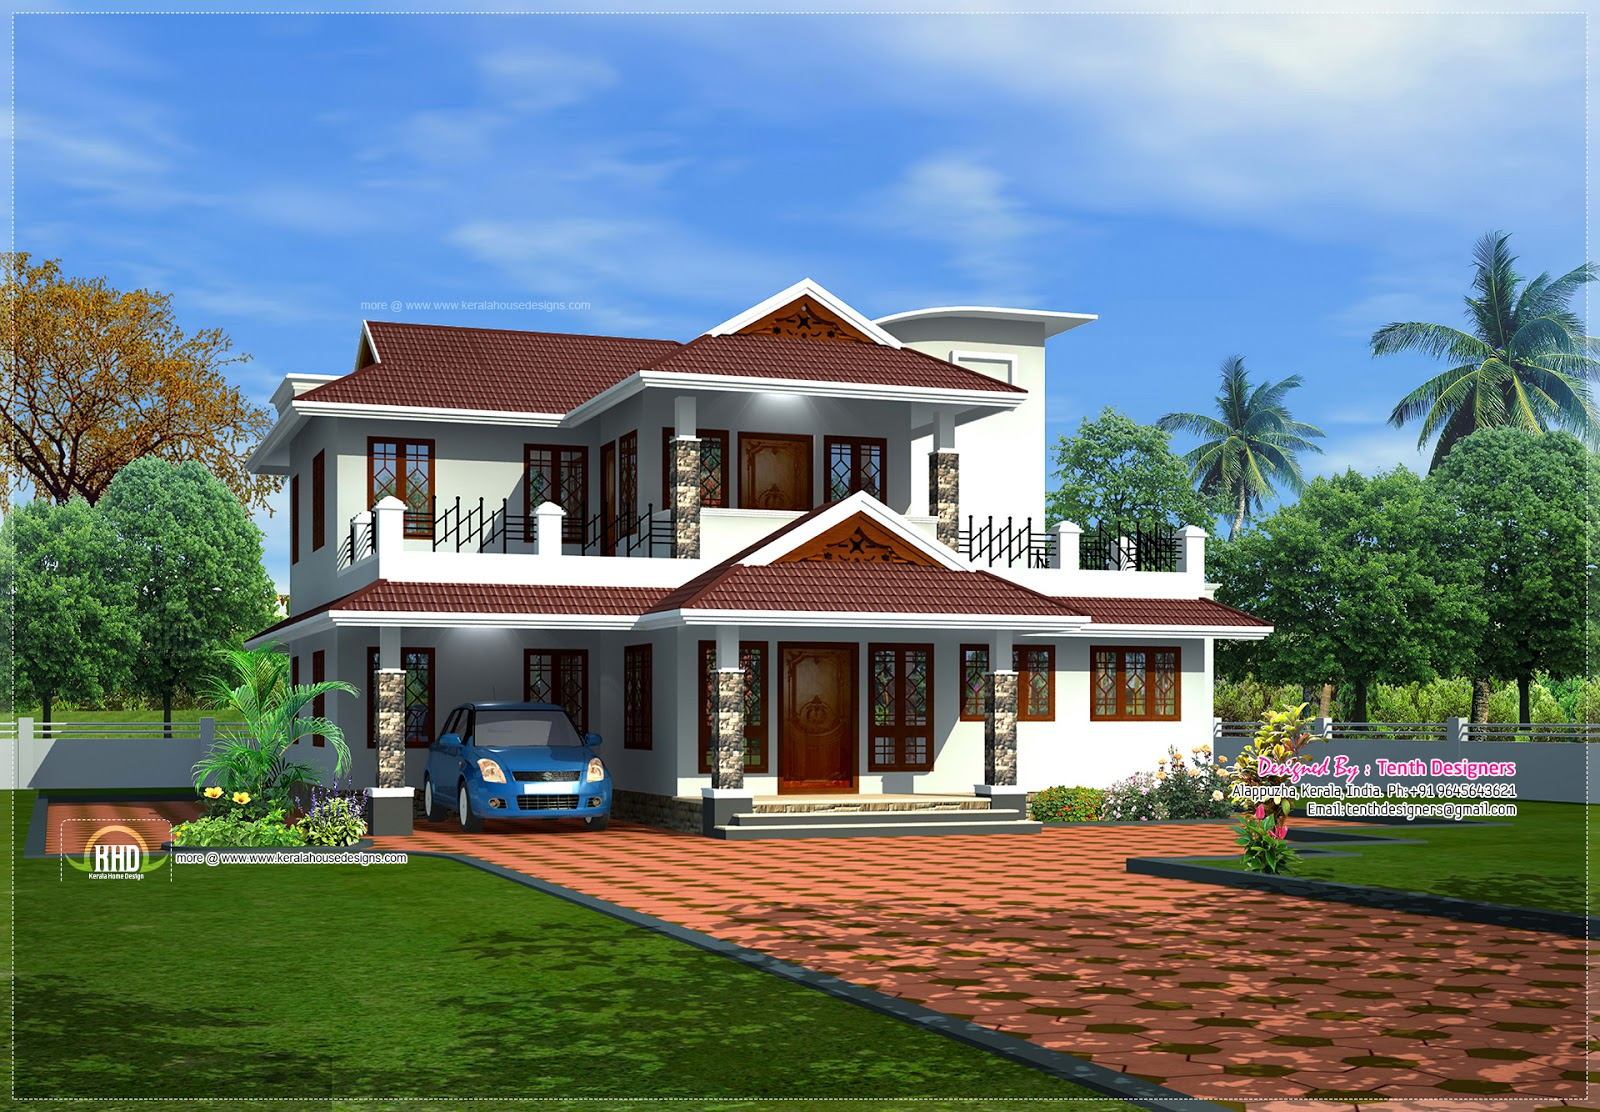 Kerala model 4 bedroom modern house design for 4 bedroom house plans kerala style architect